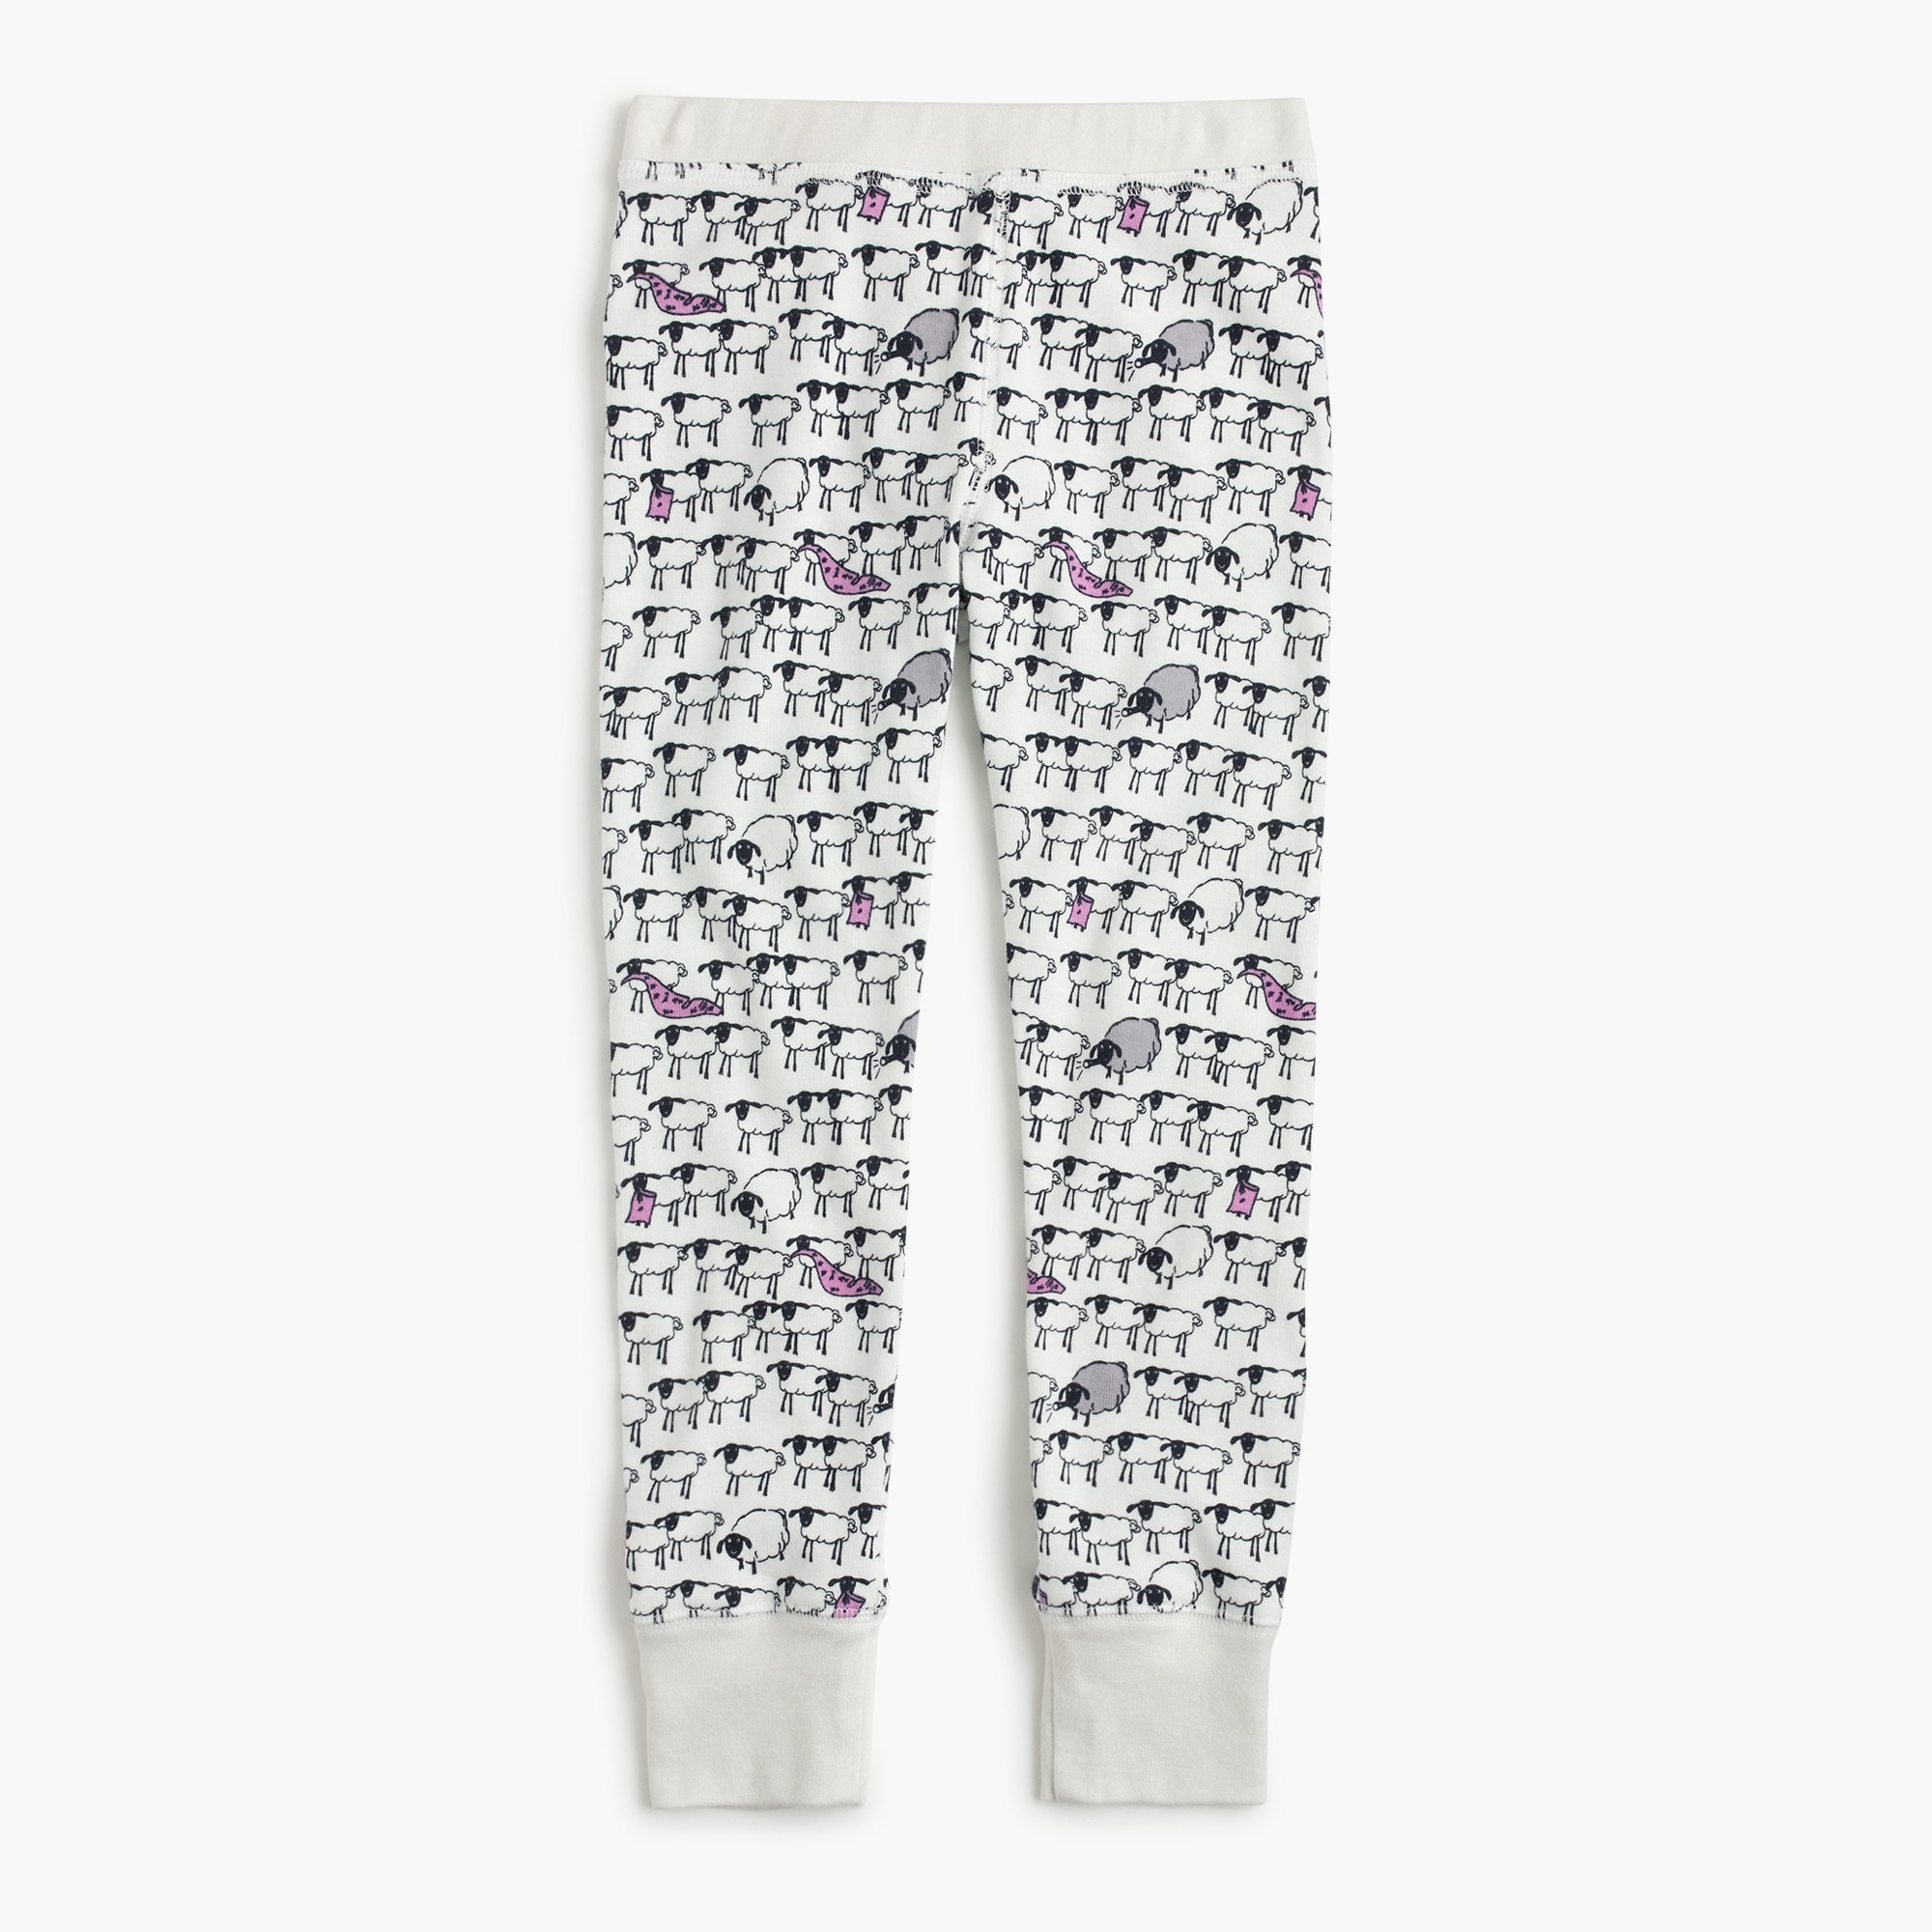 Image 3 for Kids' pajama set in sheep